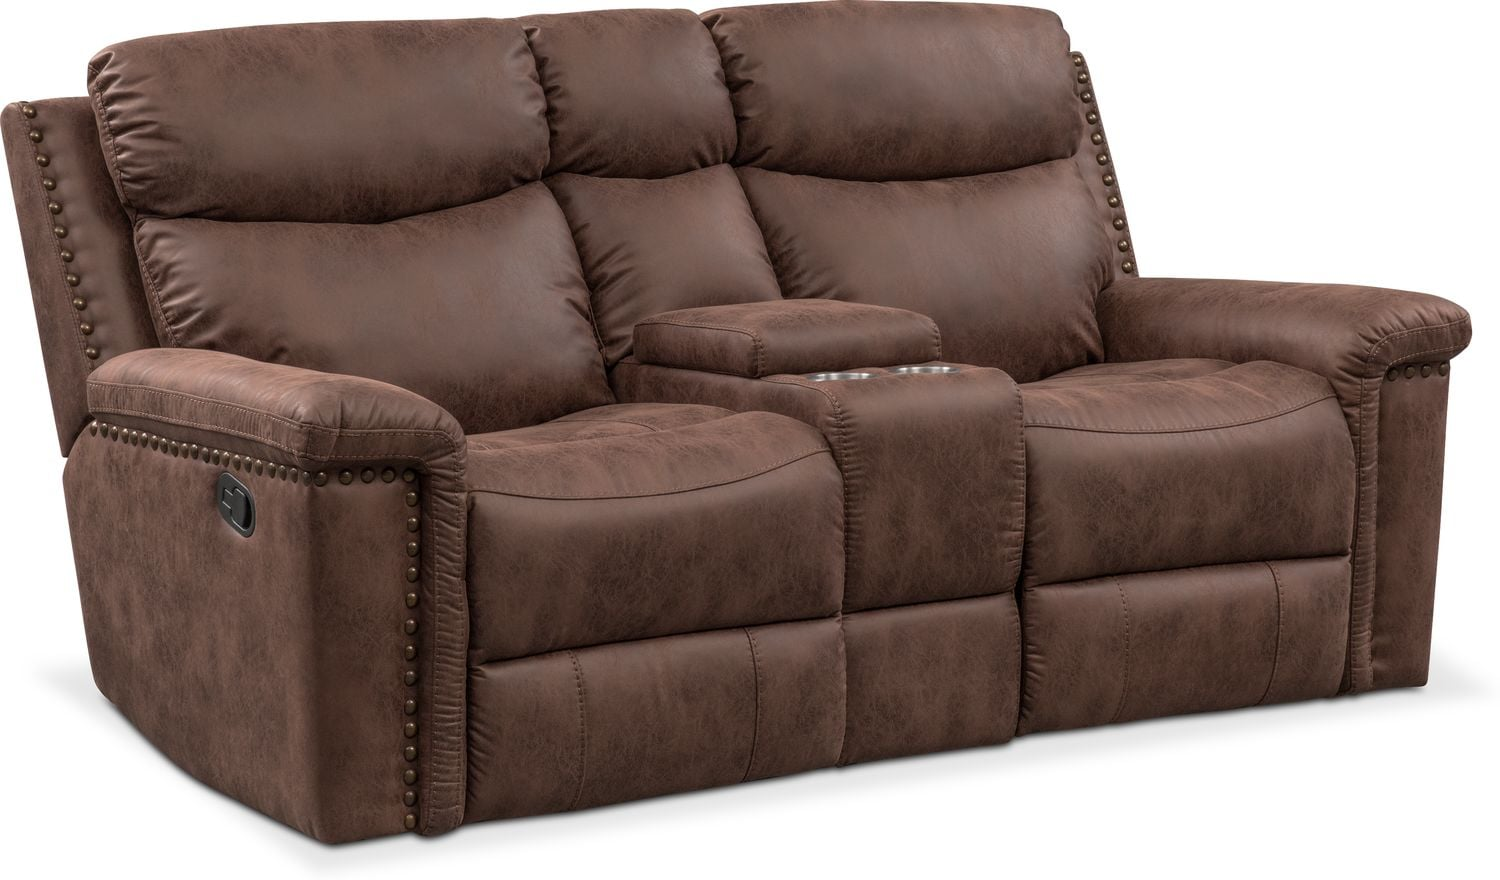 Living Room Furniture - Montana Manual Reclining Loveseat with Console